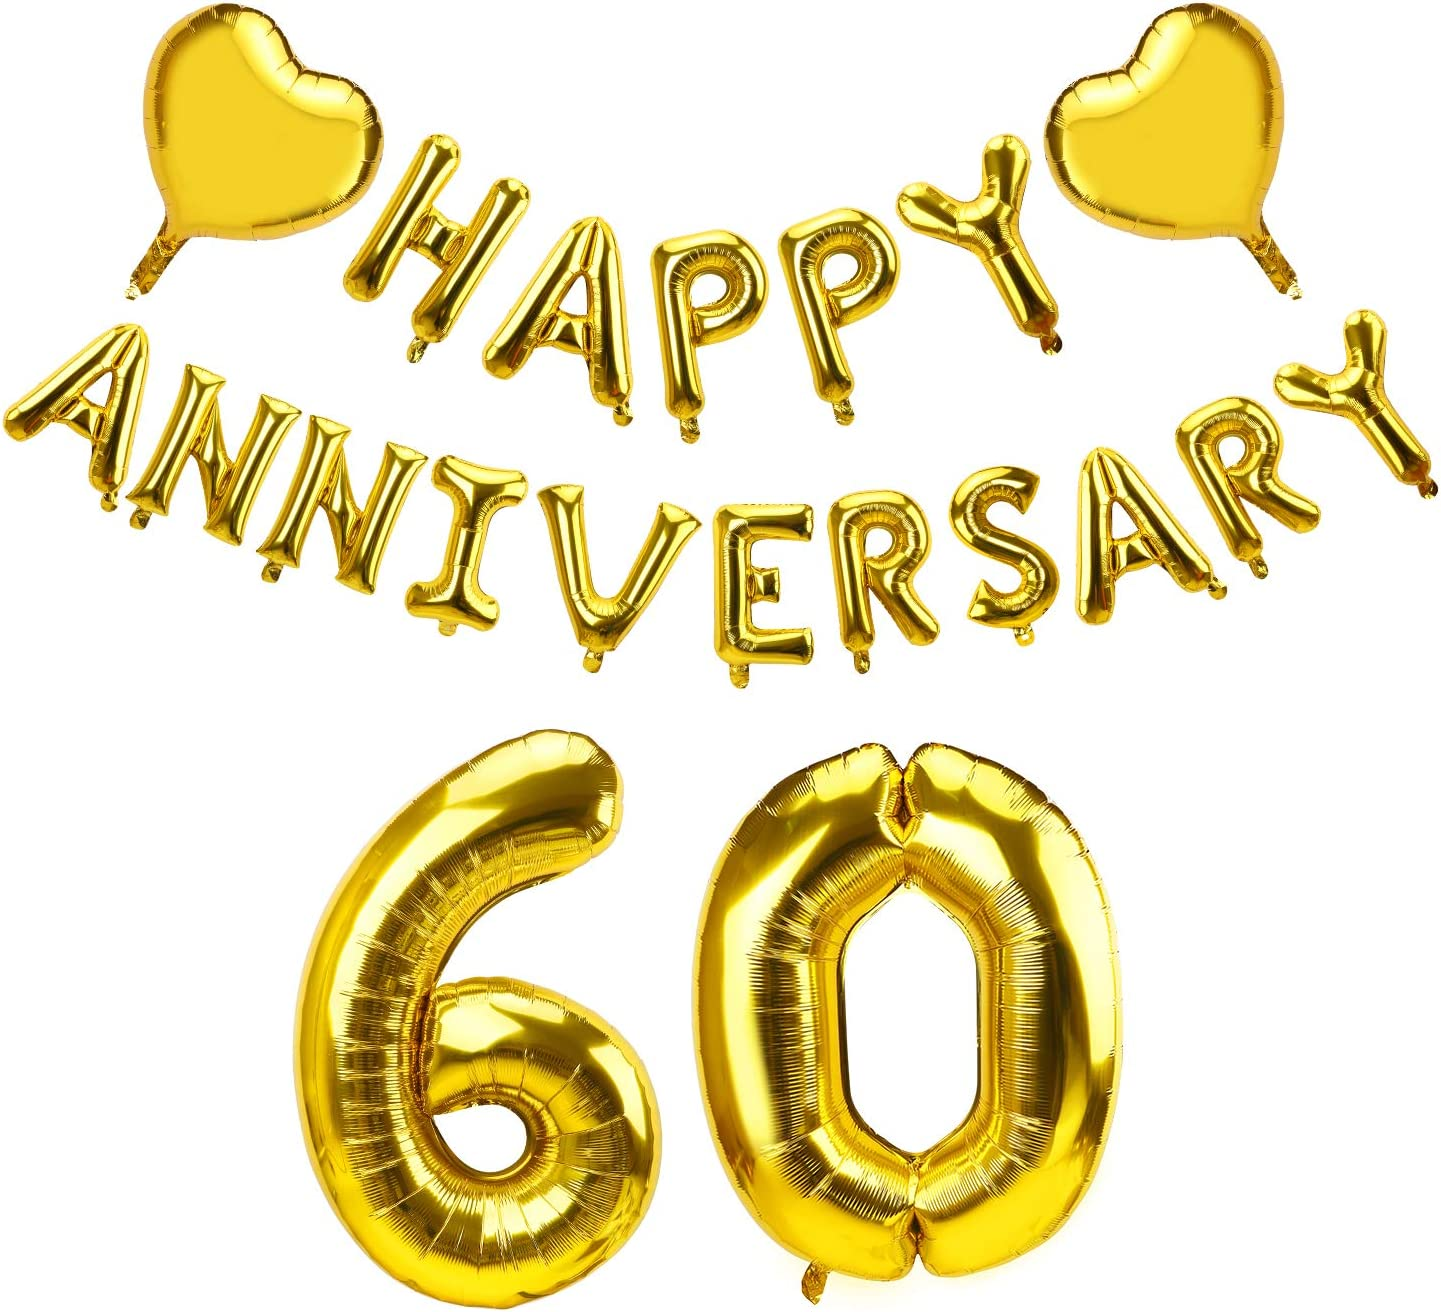 Yoaokiy Gold Happy 60 Anniversary Balloon Banner - 60th Anniversary Party Decorations - Perfect for 60th Wedding Anniversary Party Decorations Supplies